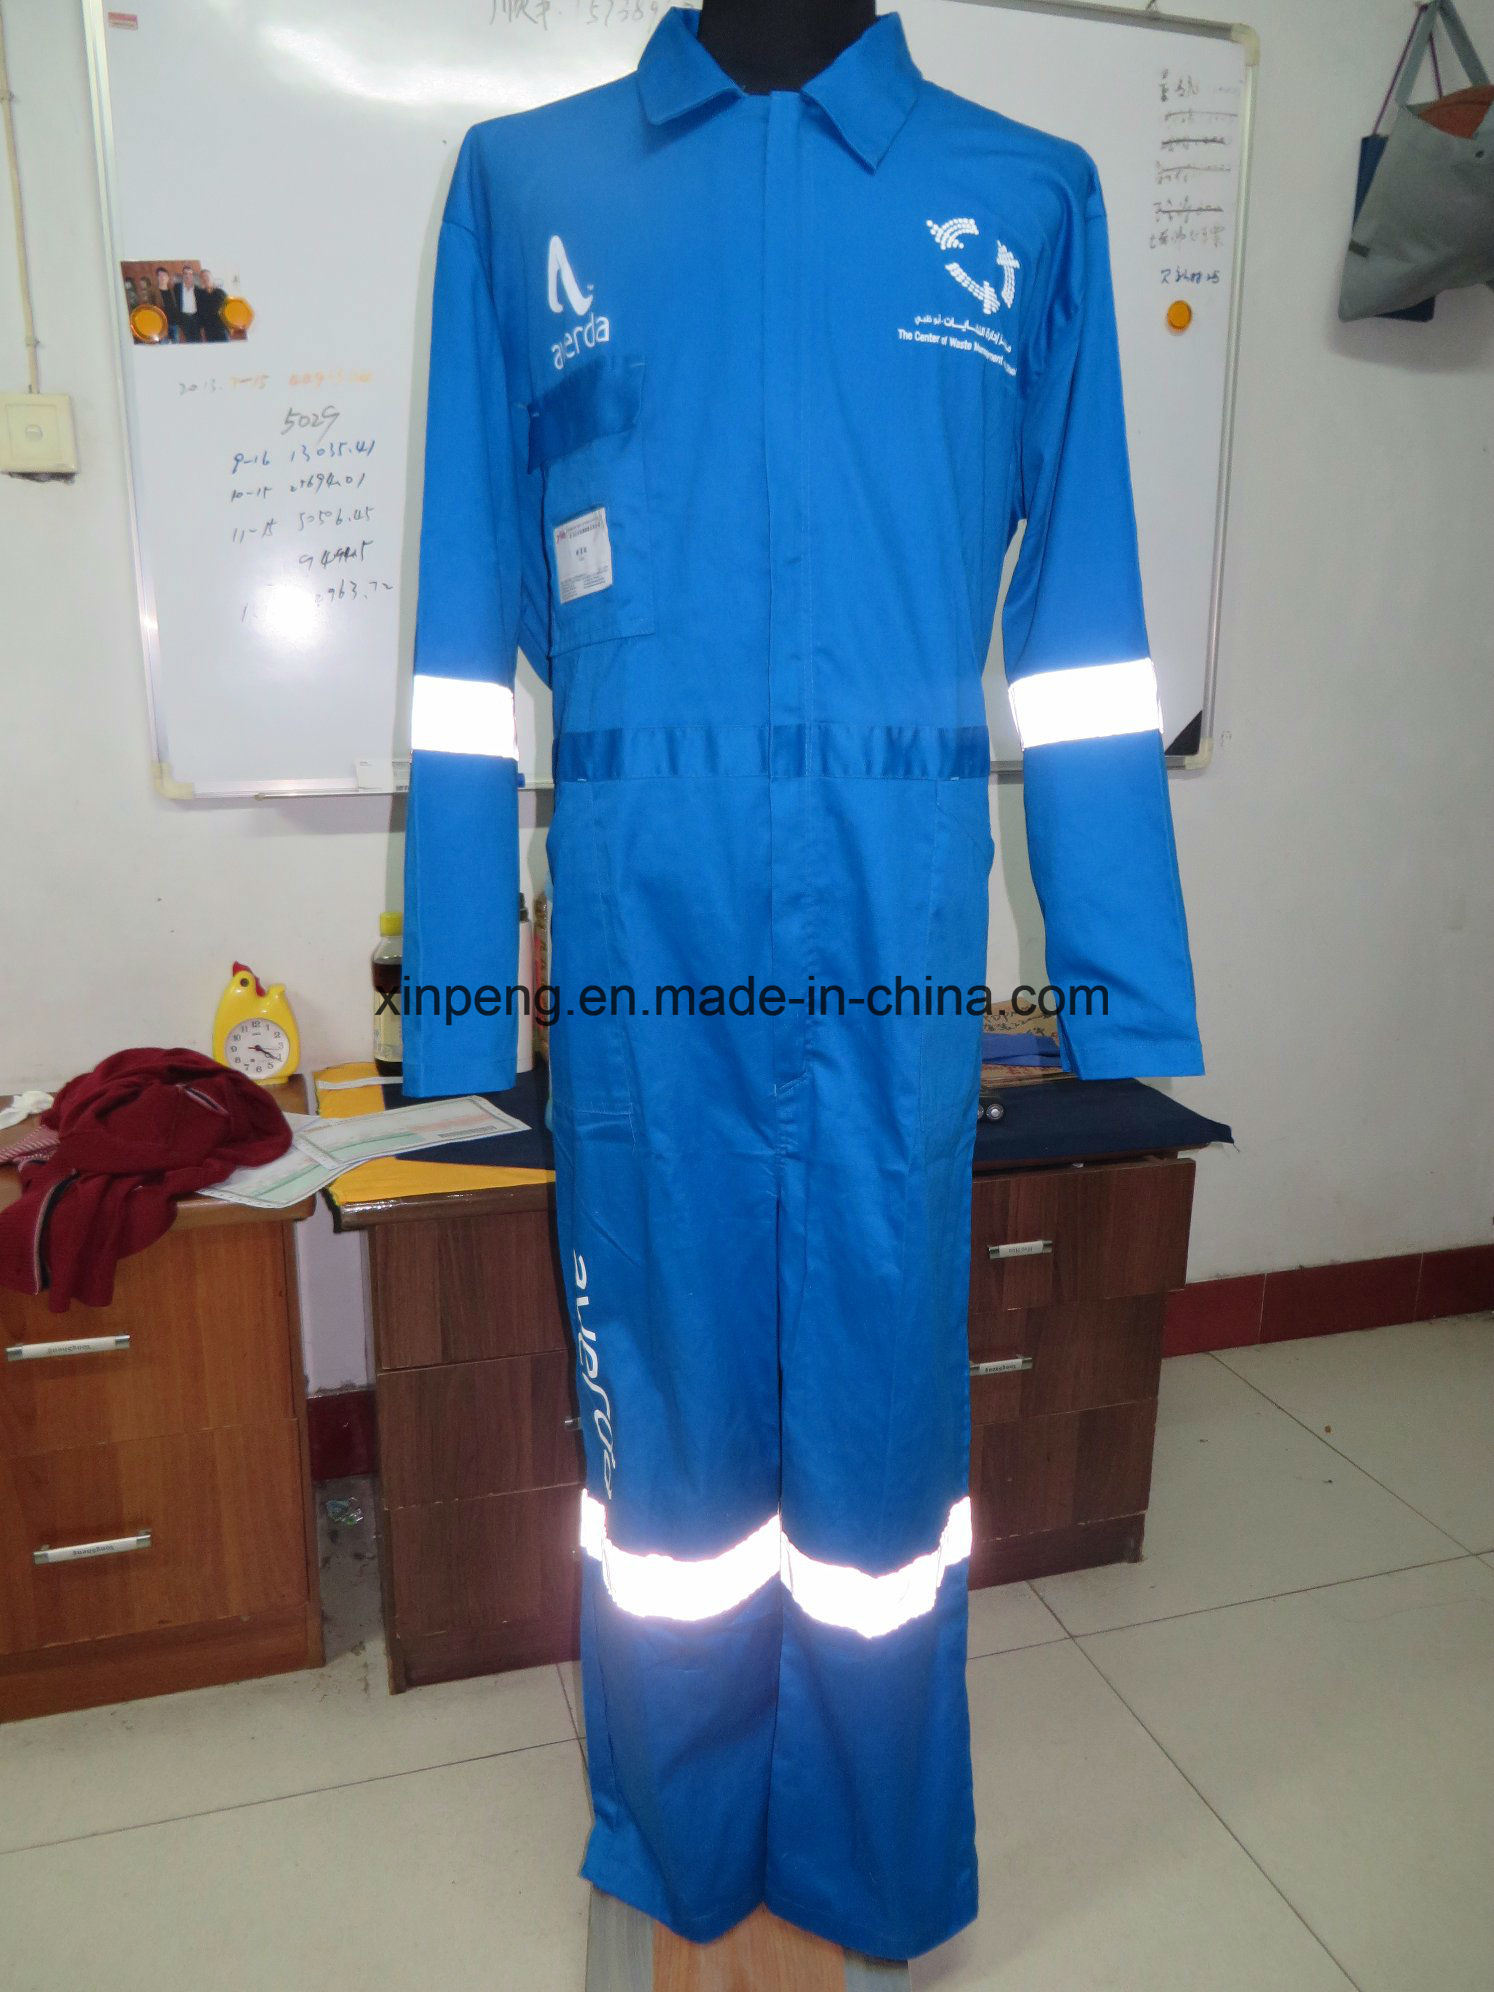 Workwear Overall with Printing and Reflective Tapes